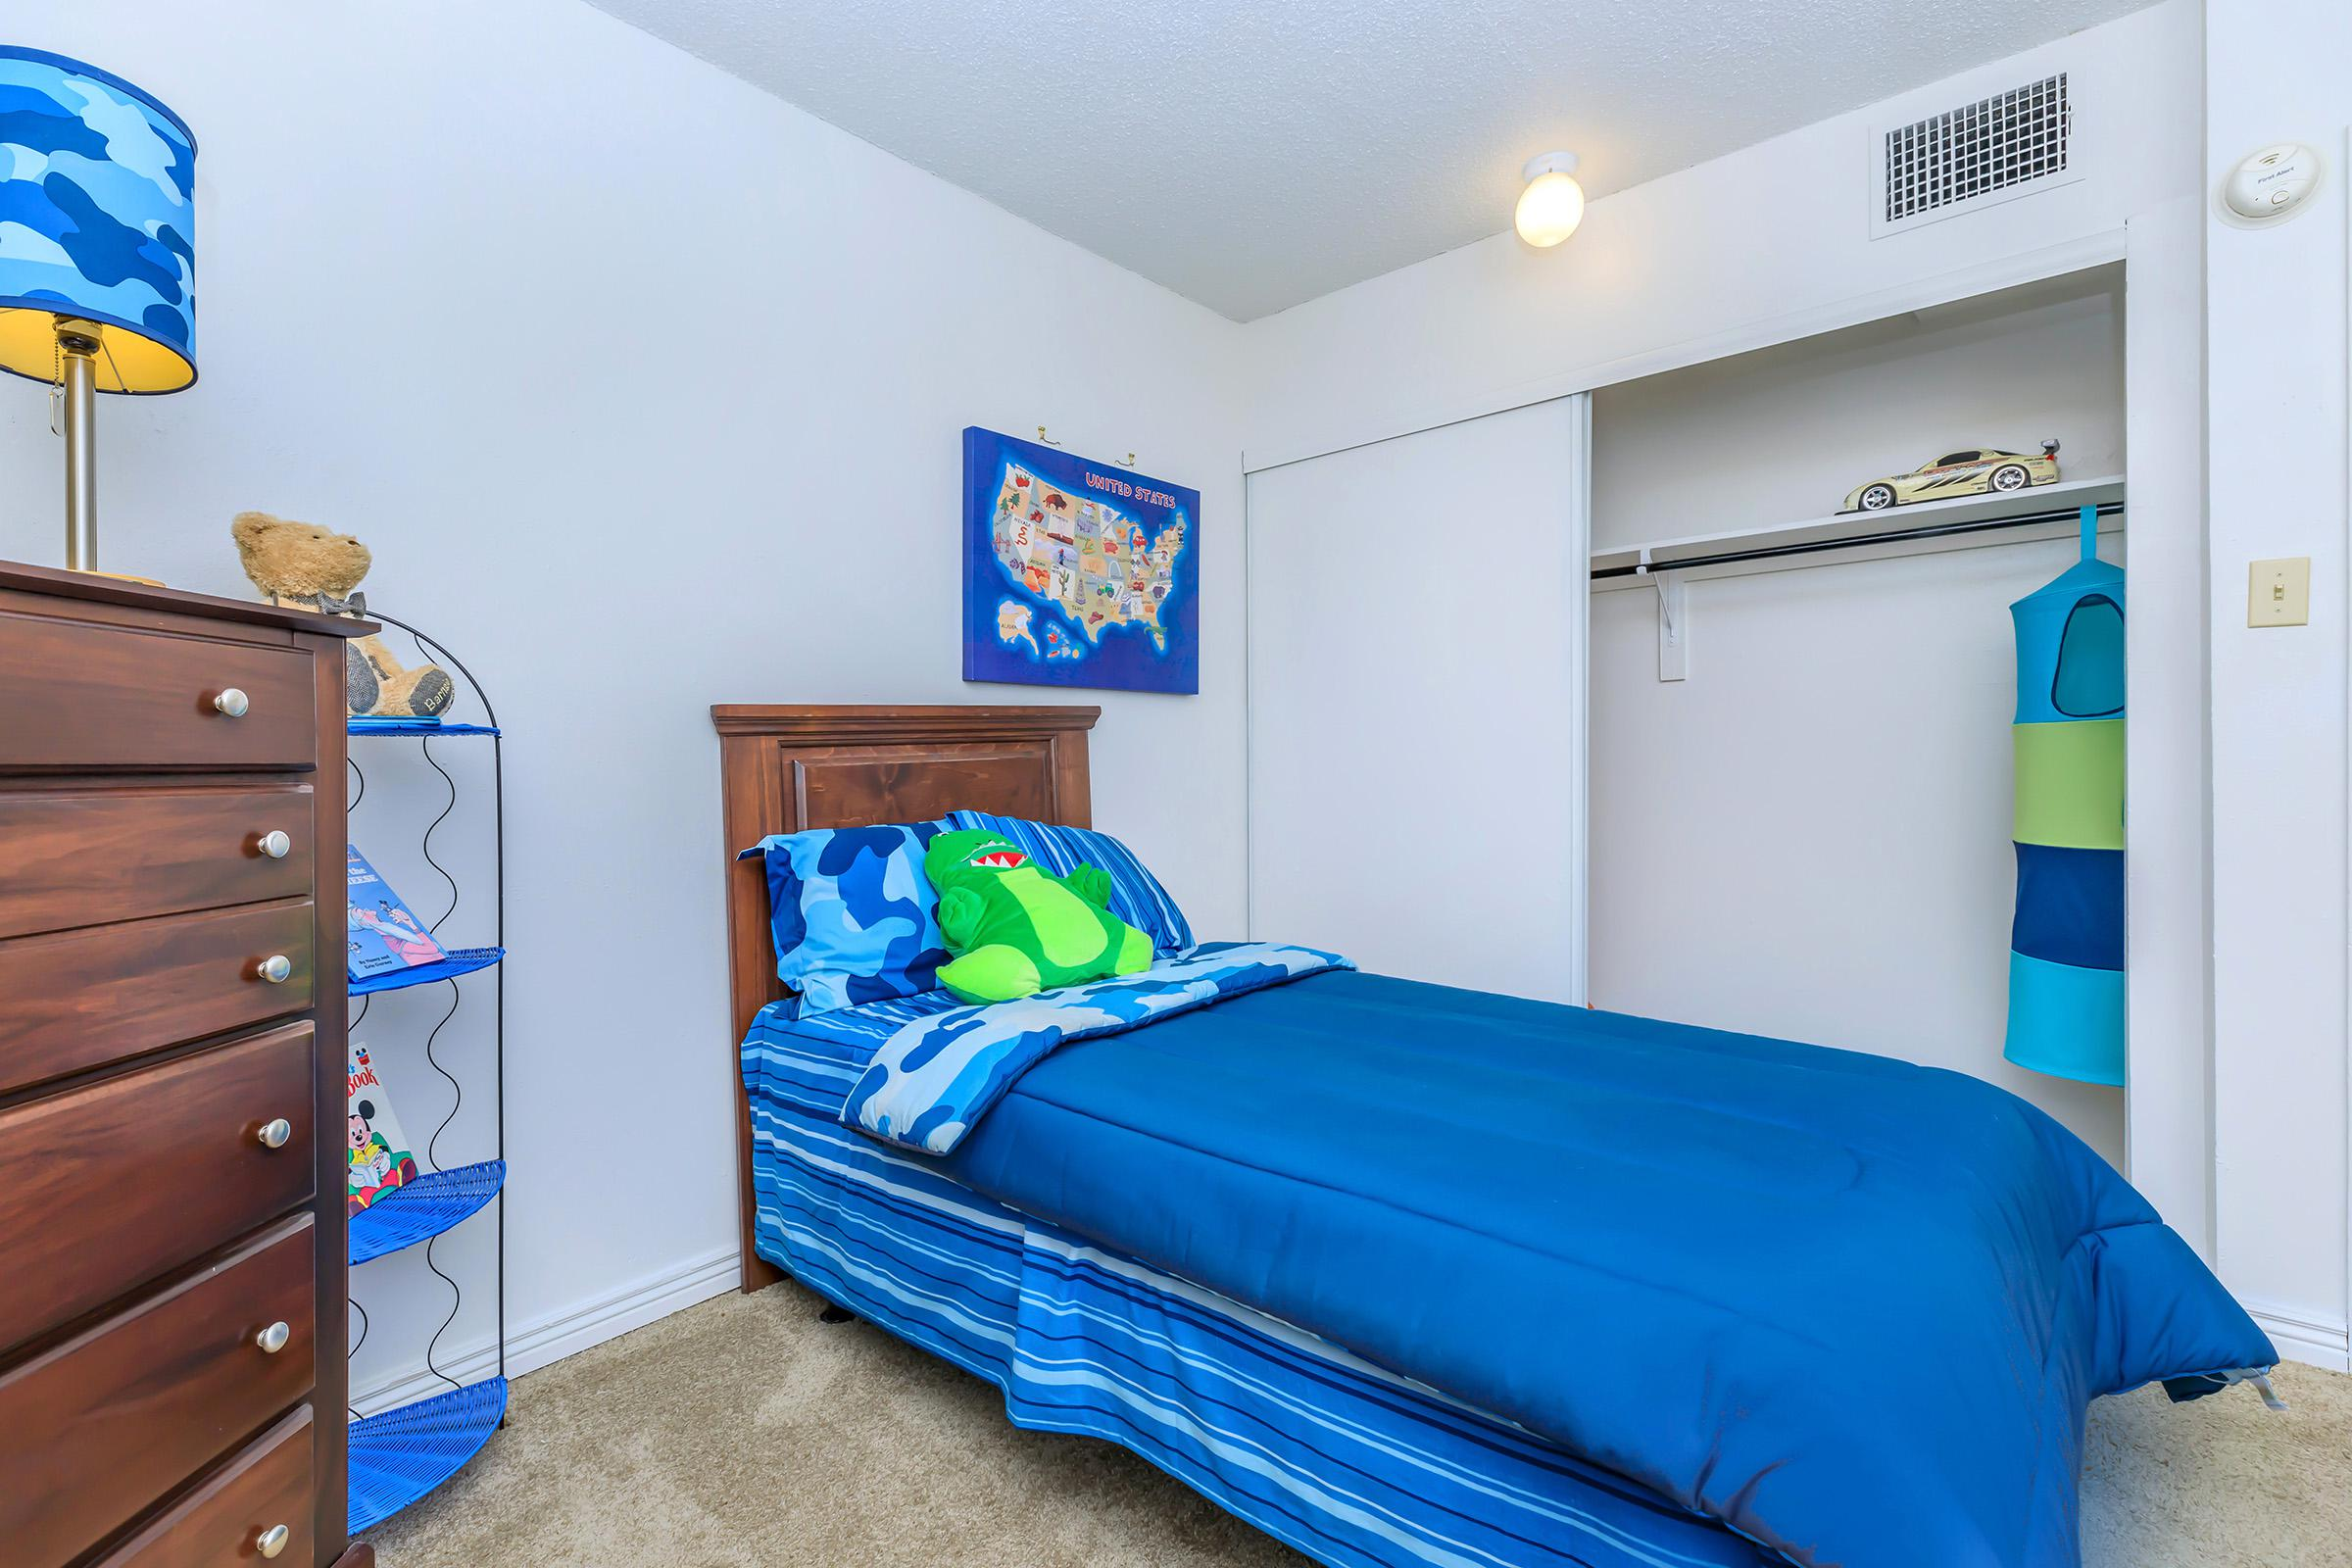 a bedroom with a bed and a blue suitcase